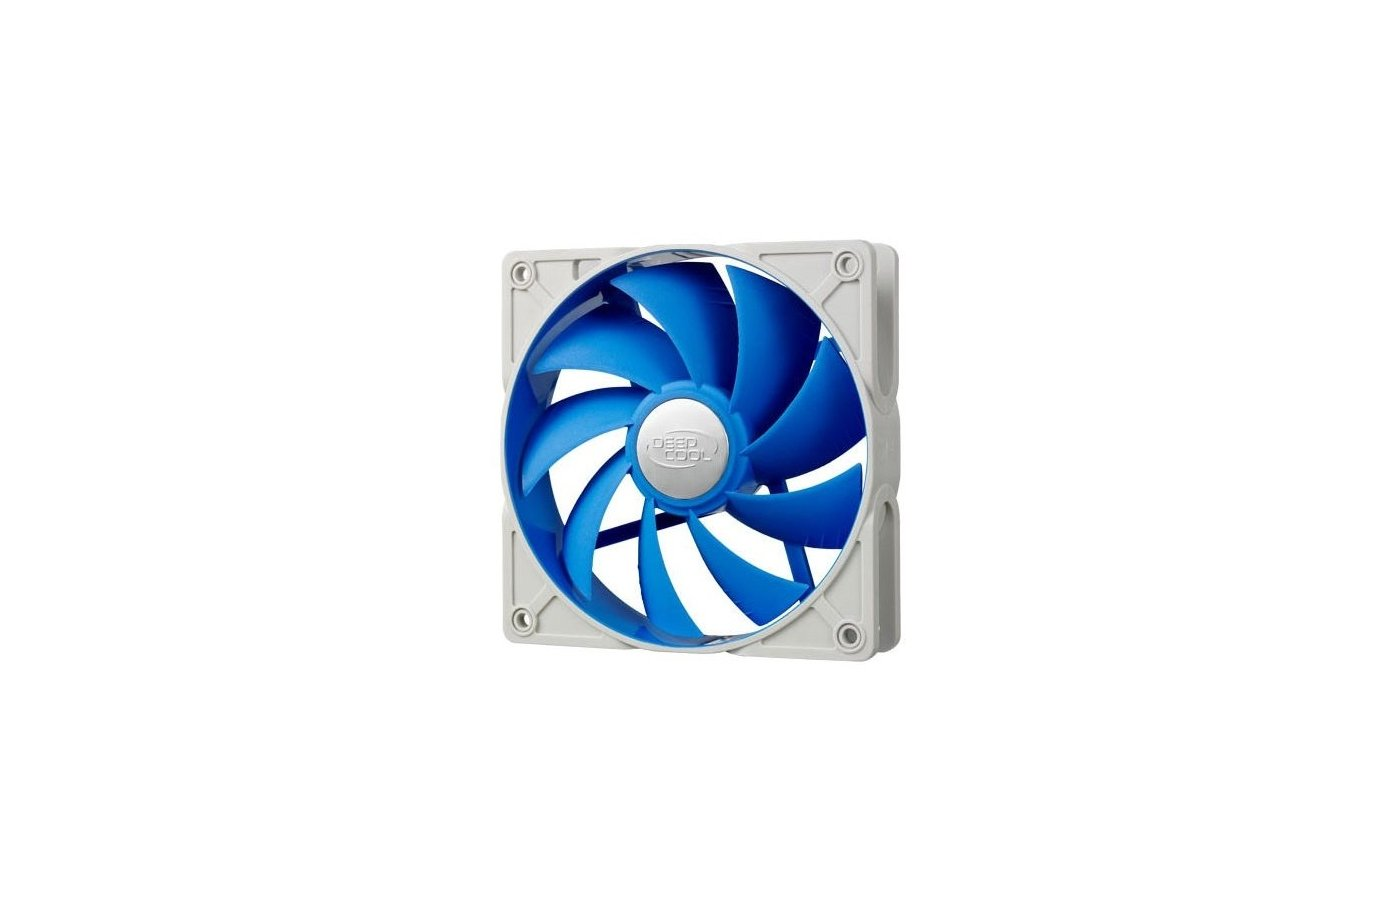 Охлаждение Deepcool UF 120 120x120x25 4pin 18-29dB 500-1500rpm 172g anti-vibration для корпуса